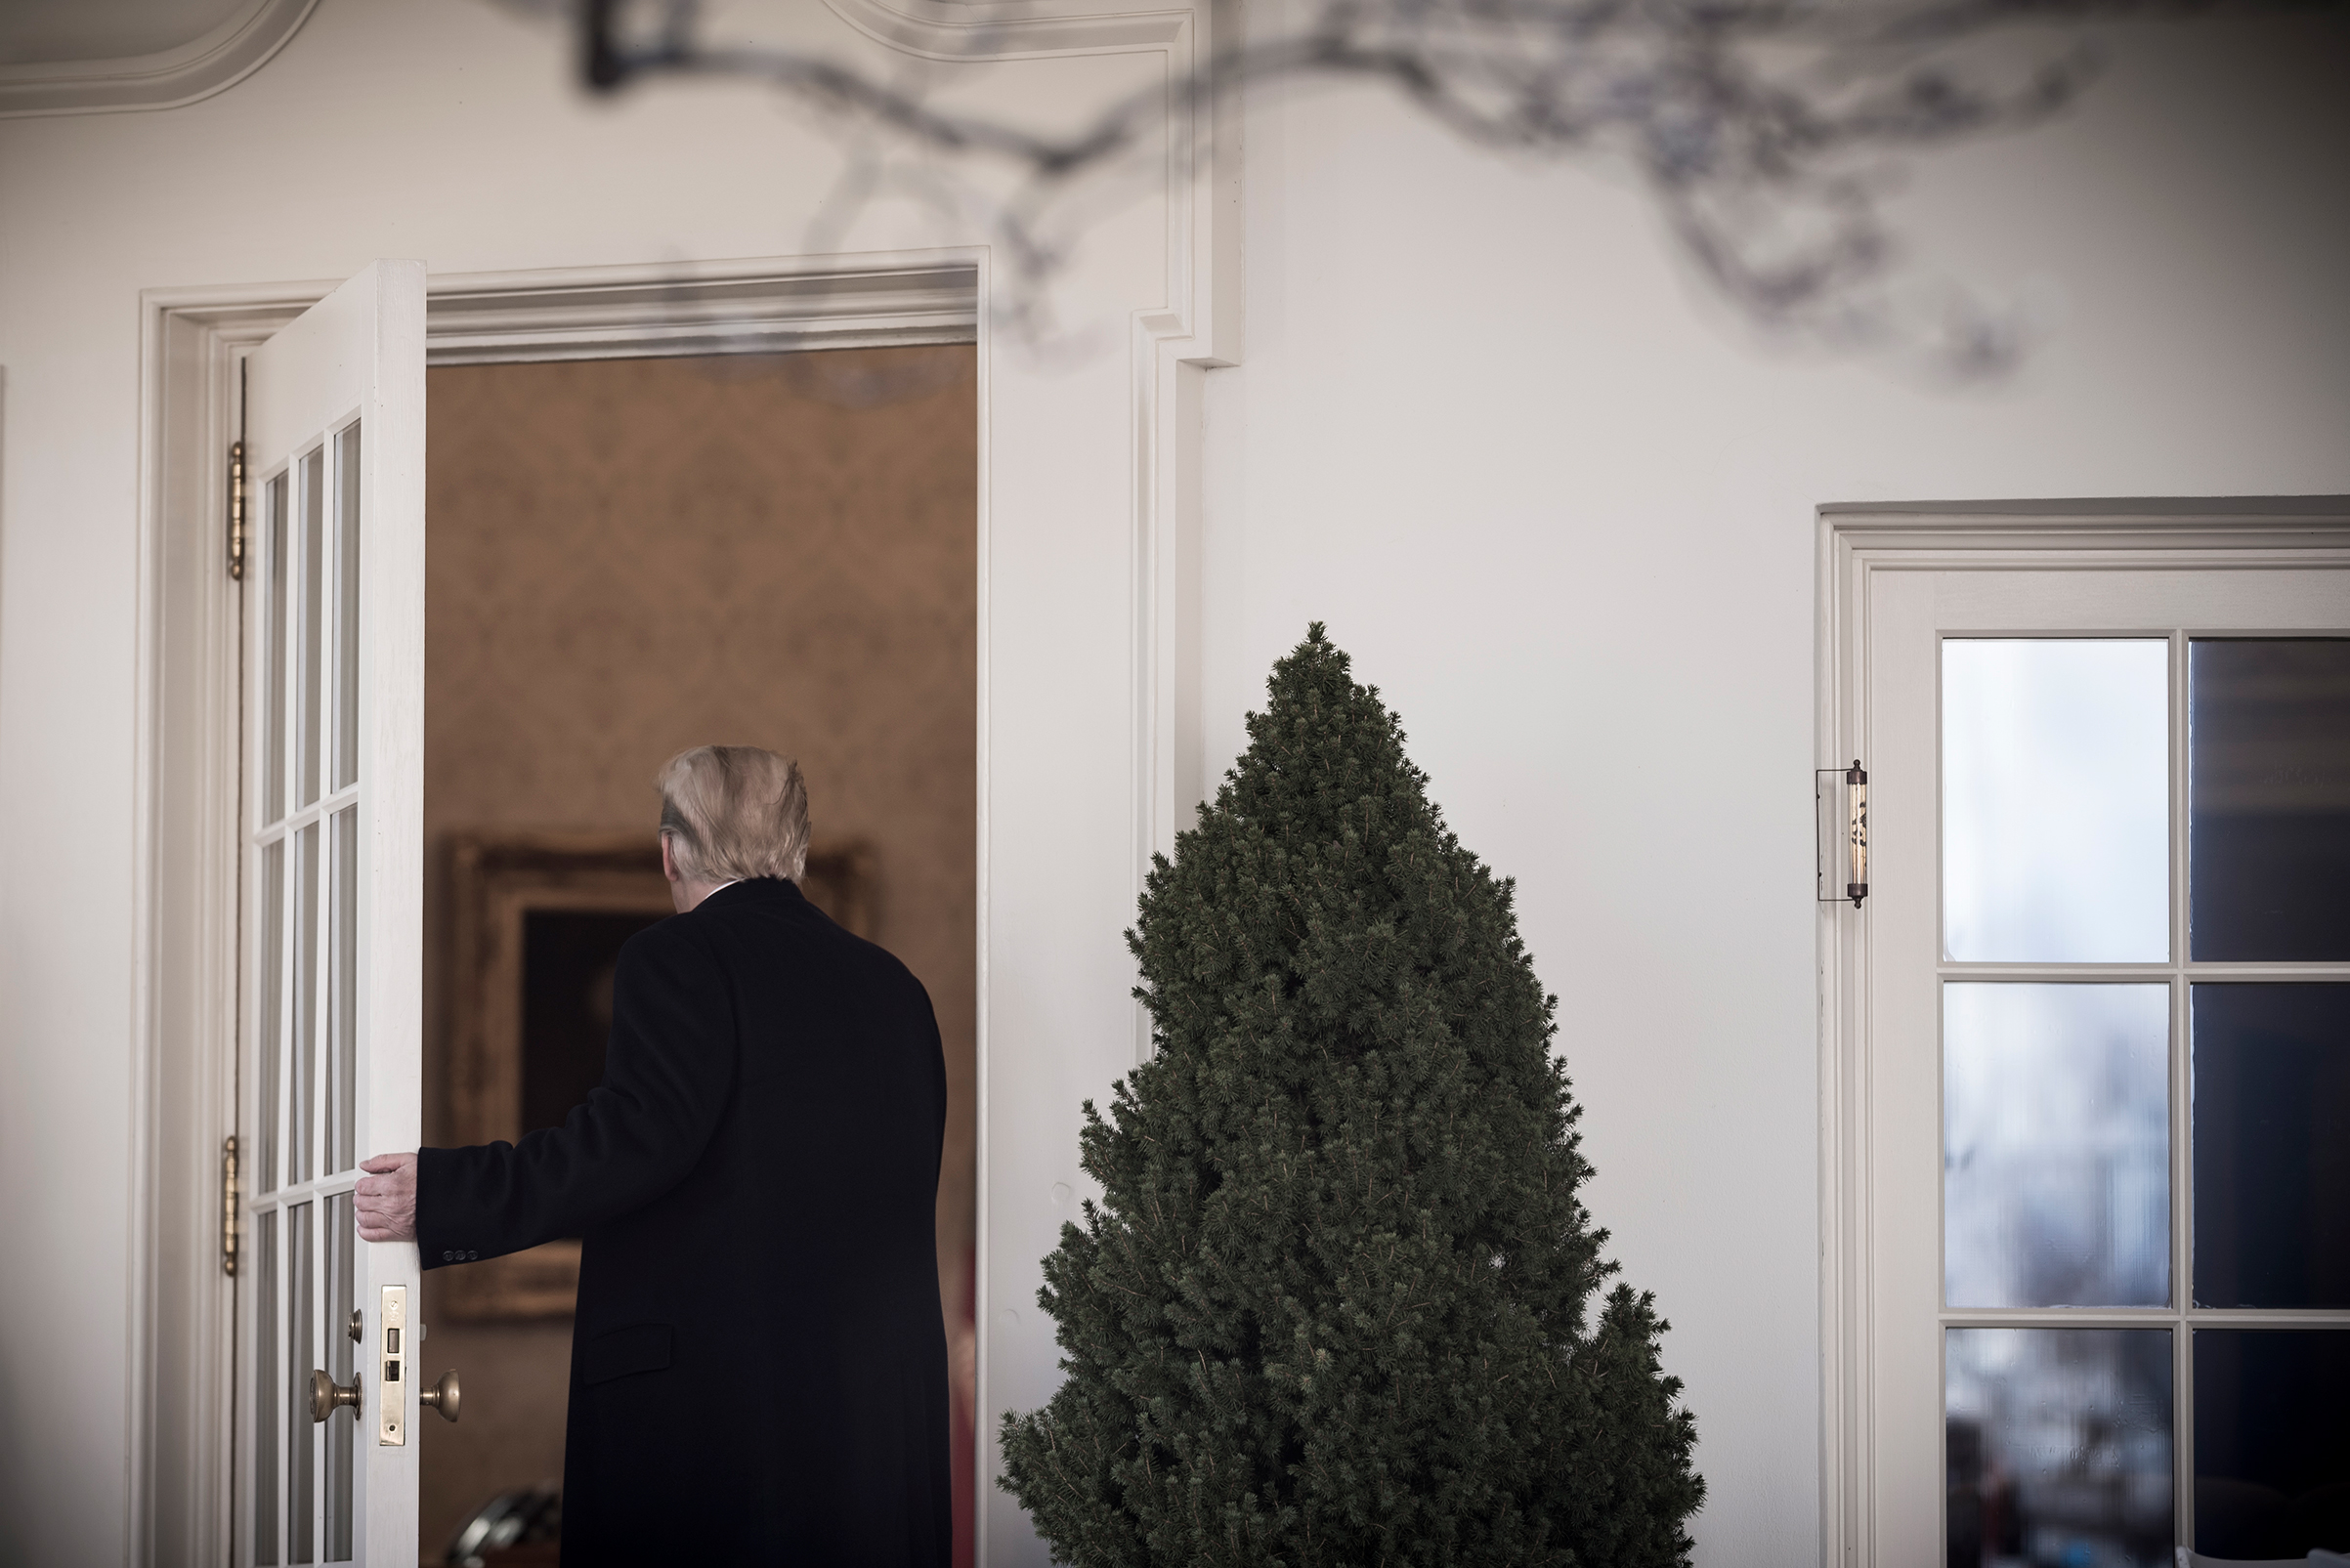 President Trump returns to the Oval Office after his remarks on the shutdown on Jan. 25, 2019.